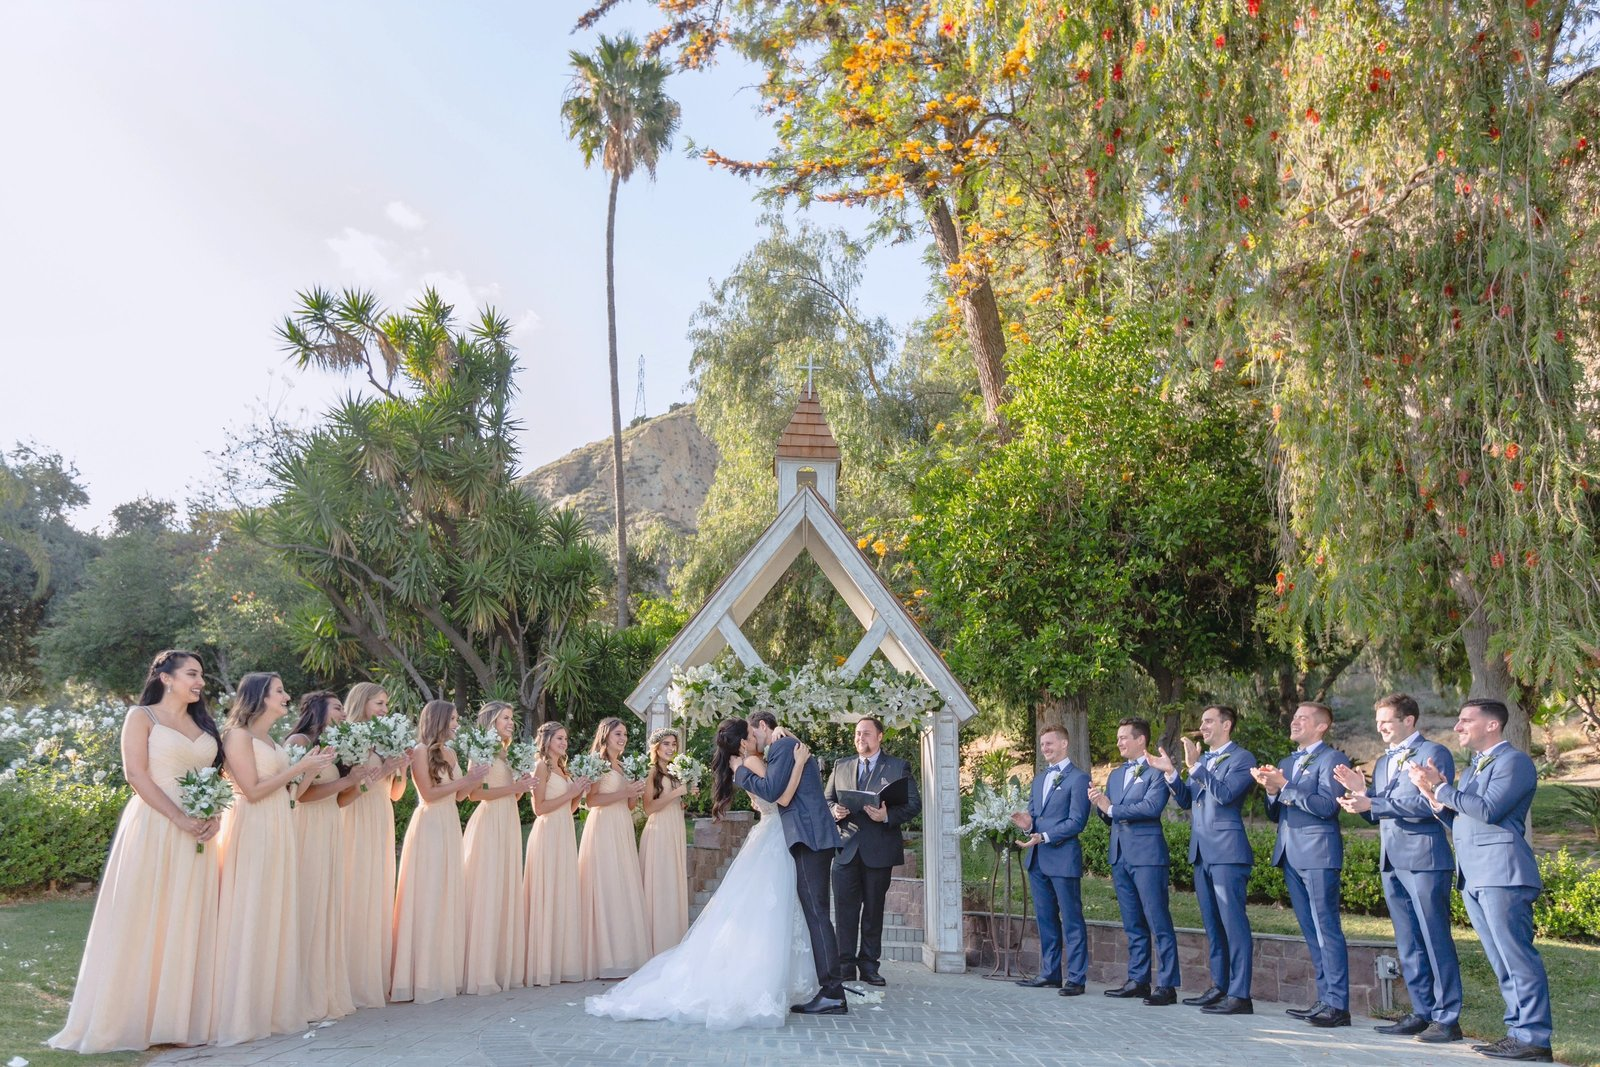 frist kiss newhall mansion wedding venue